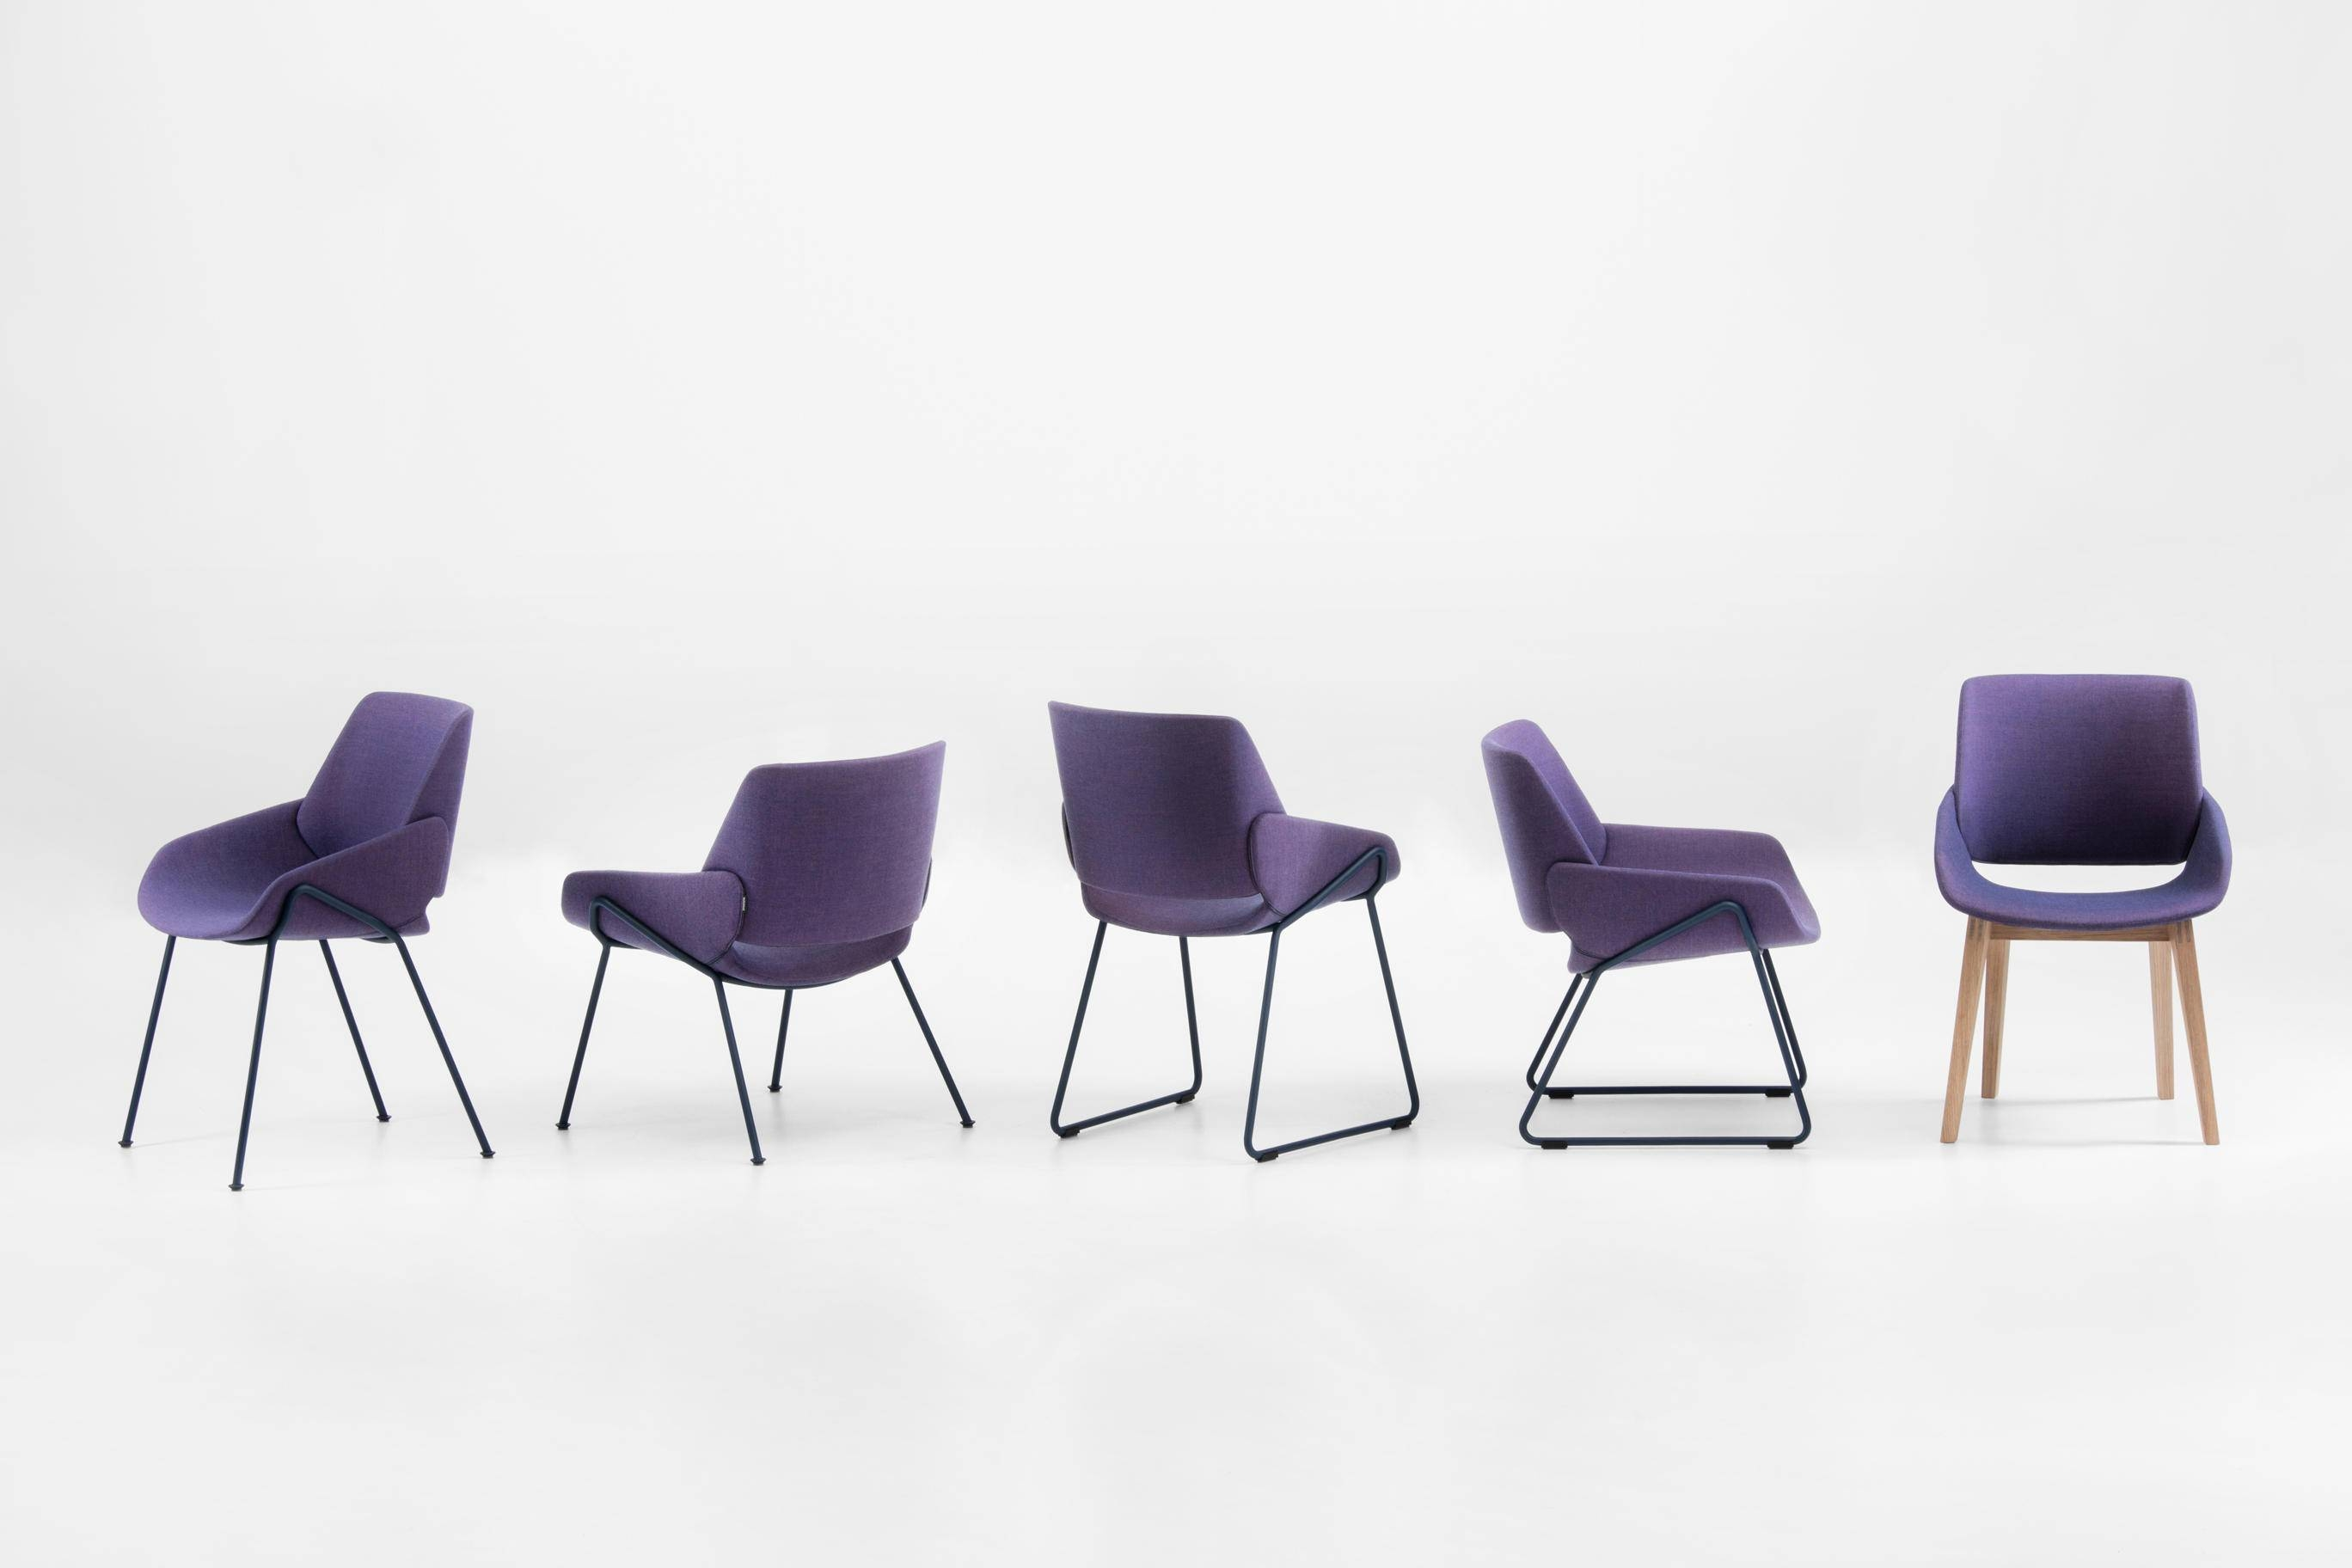 Monk Chair – Visitors Chairs / Side Chairs From Prostoria | Architonic For Monk Chairs (View 5 of 30)